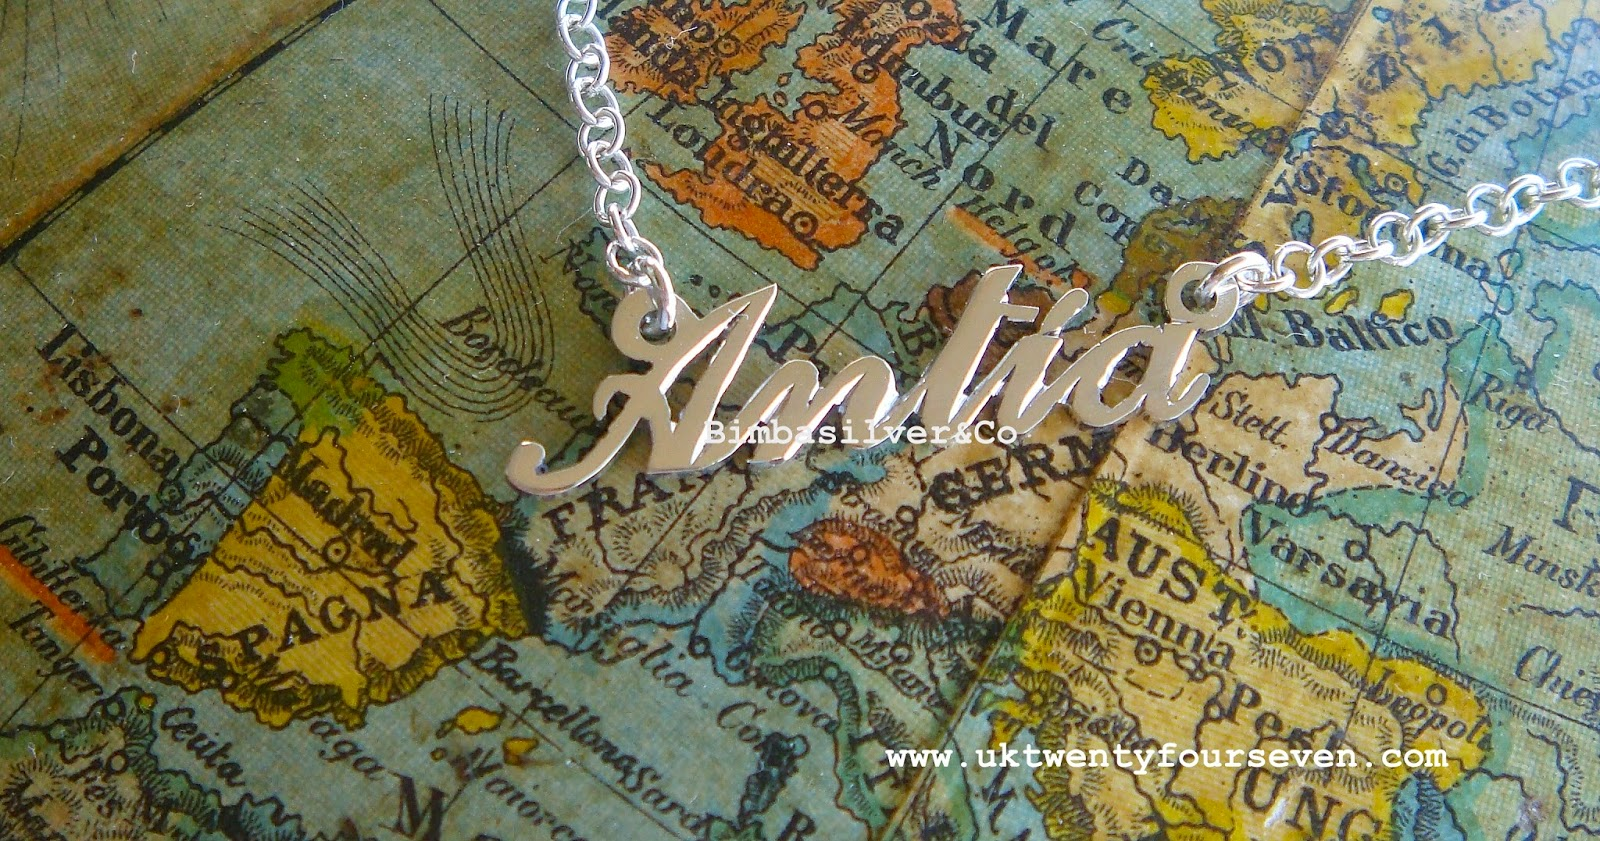 ALEMANIA, DEUTSCHLAND, NECKLACES, JEWERLY, CUSTOM NECKLACE, PERSONALISIERTE HALSKETTE, SILVER, GOLD, COOL, FASHION, NYFW, MFW